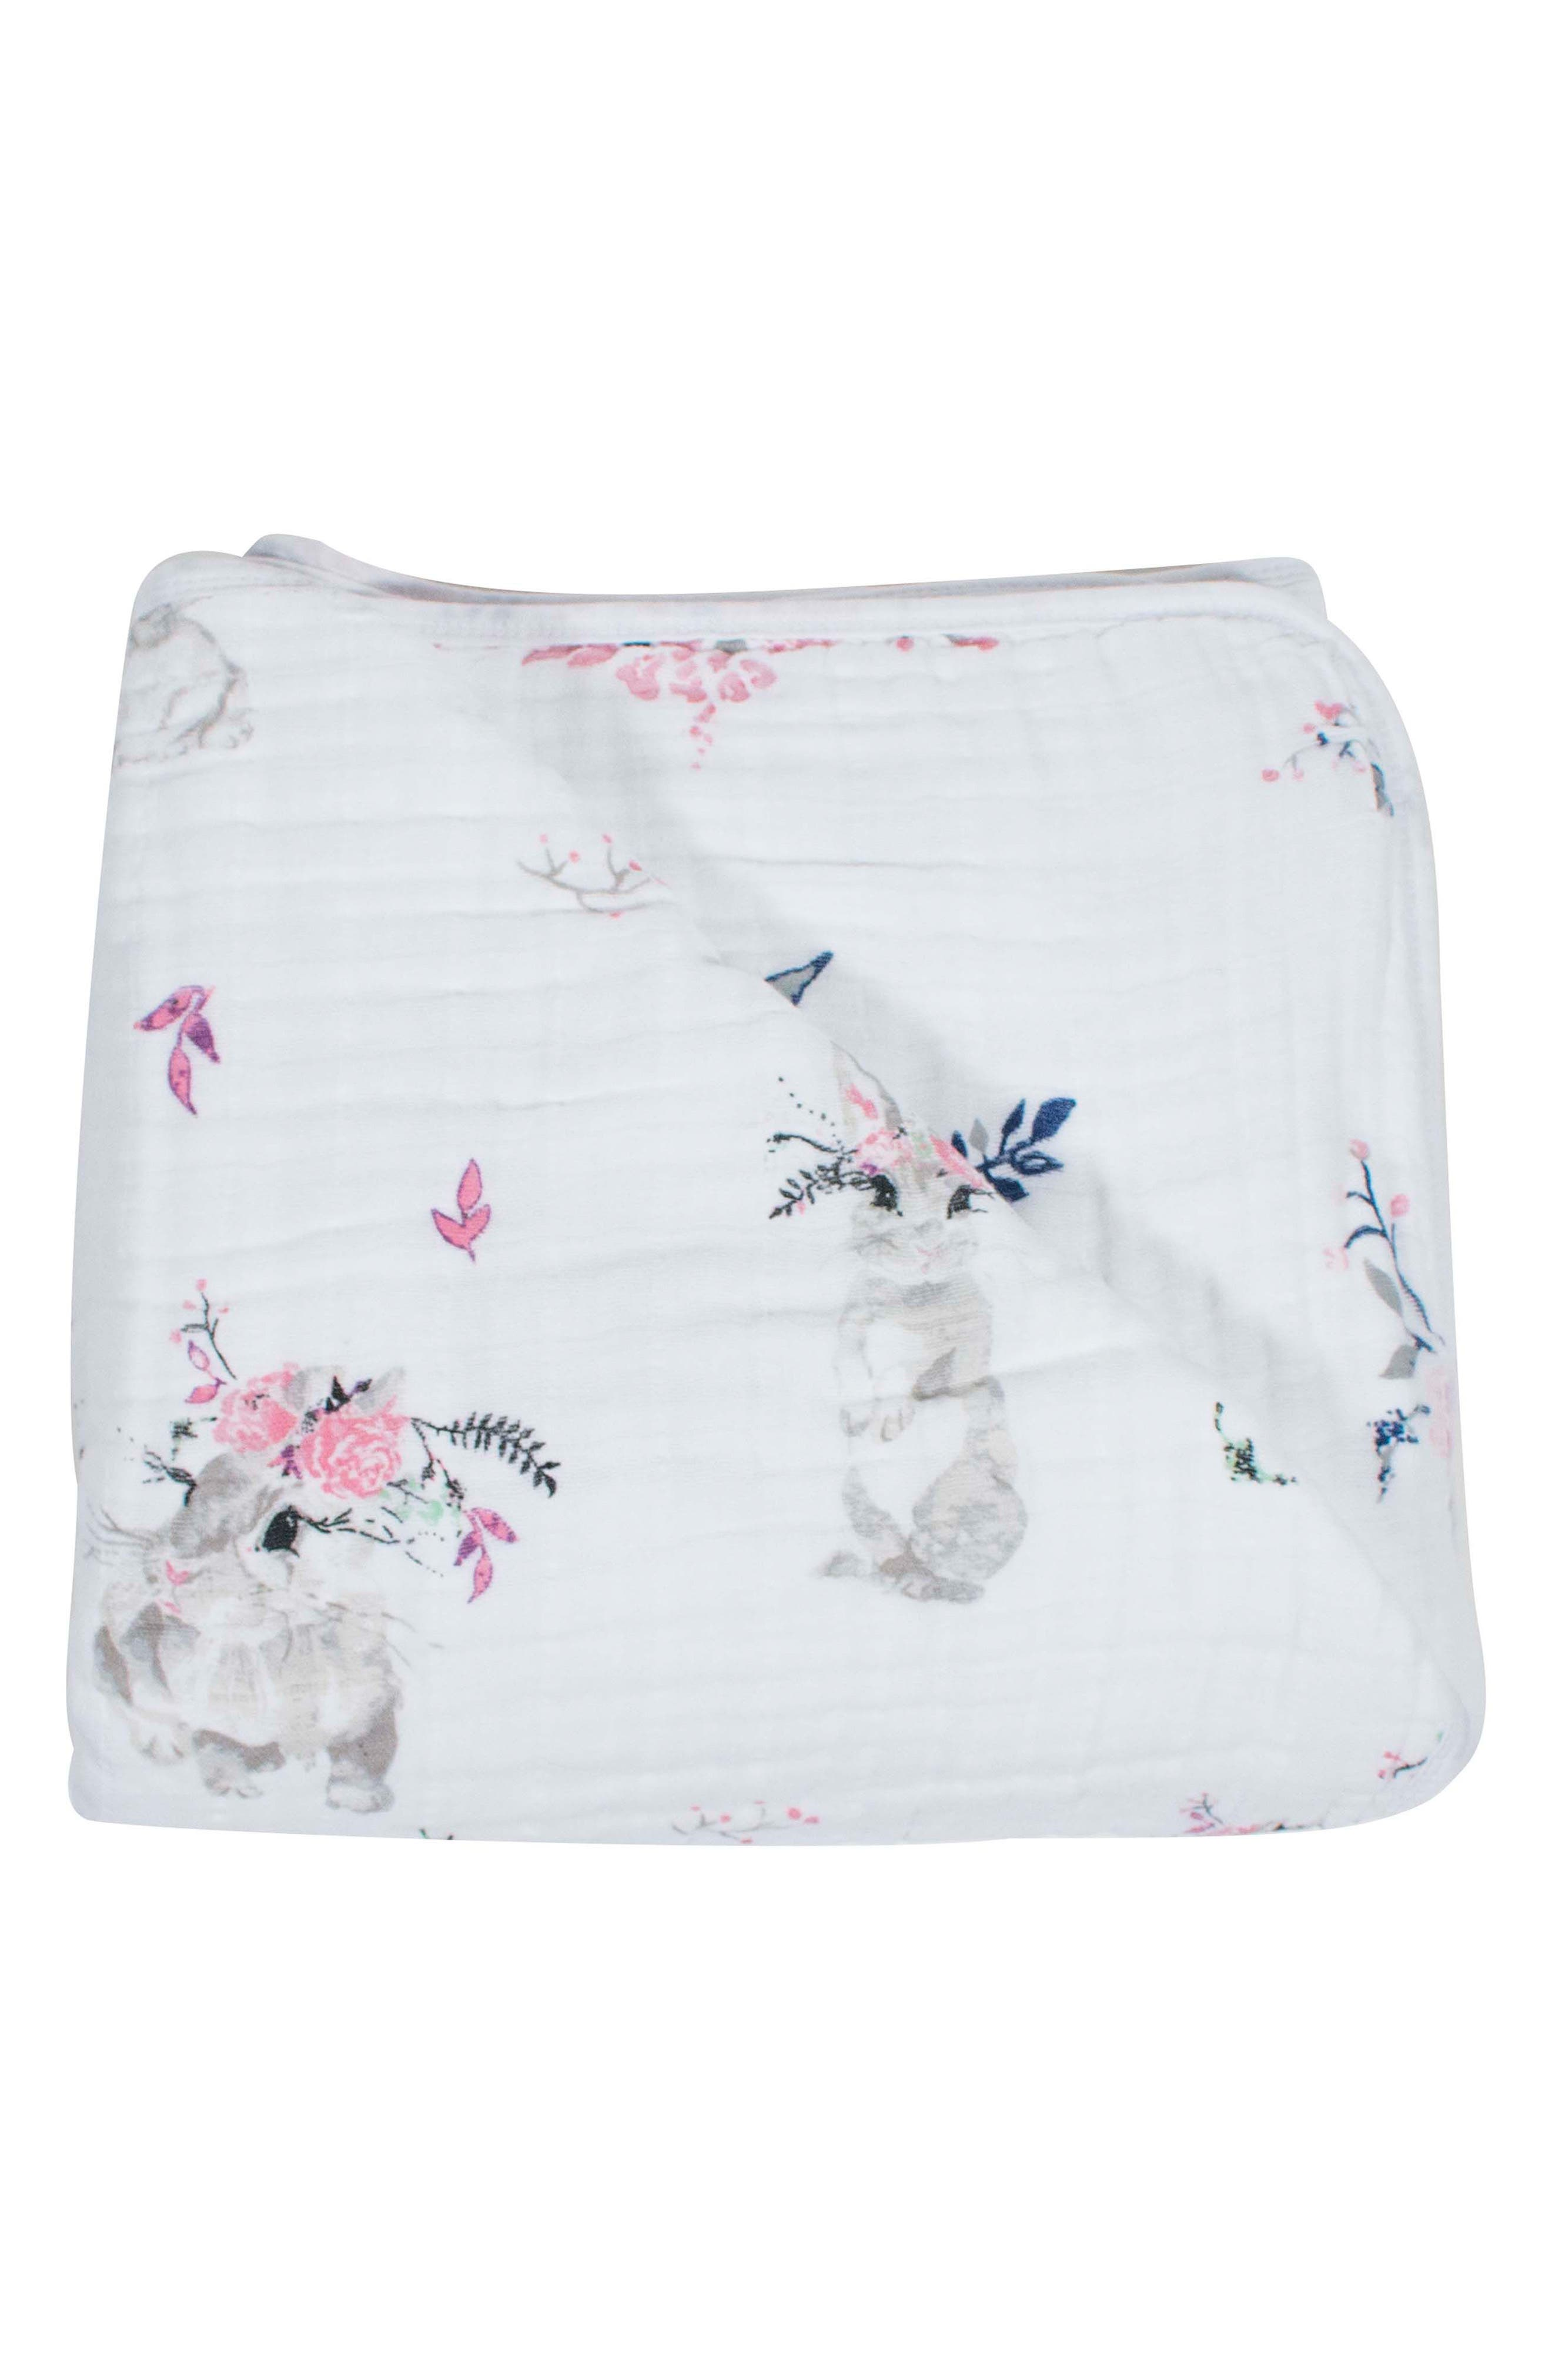 Classic Cotton Muslin Snuggle Blanket,                         Main,                         color, BUNY TAILS/ GARLAND